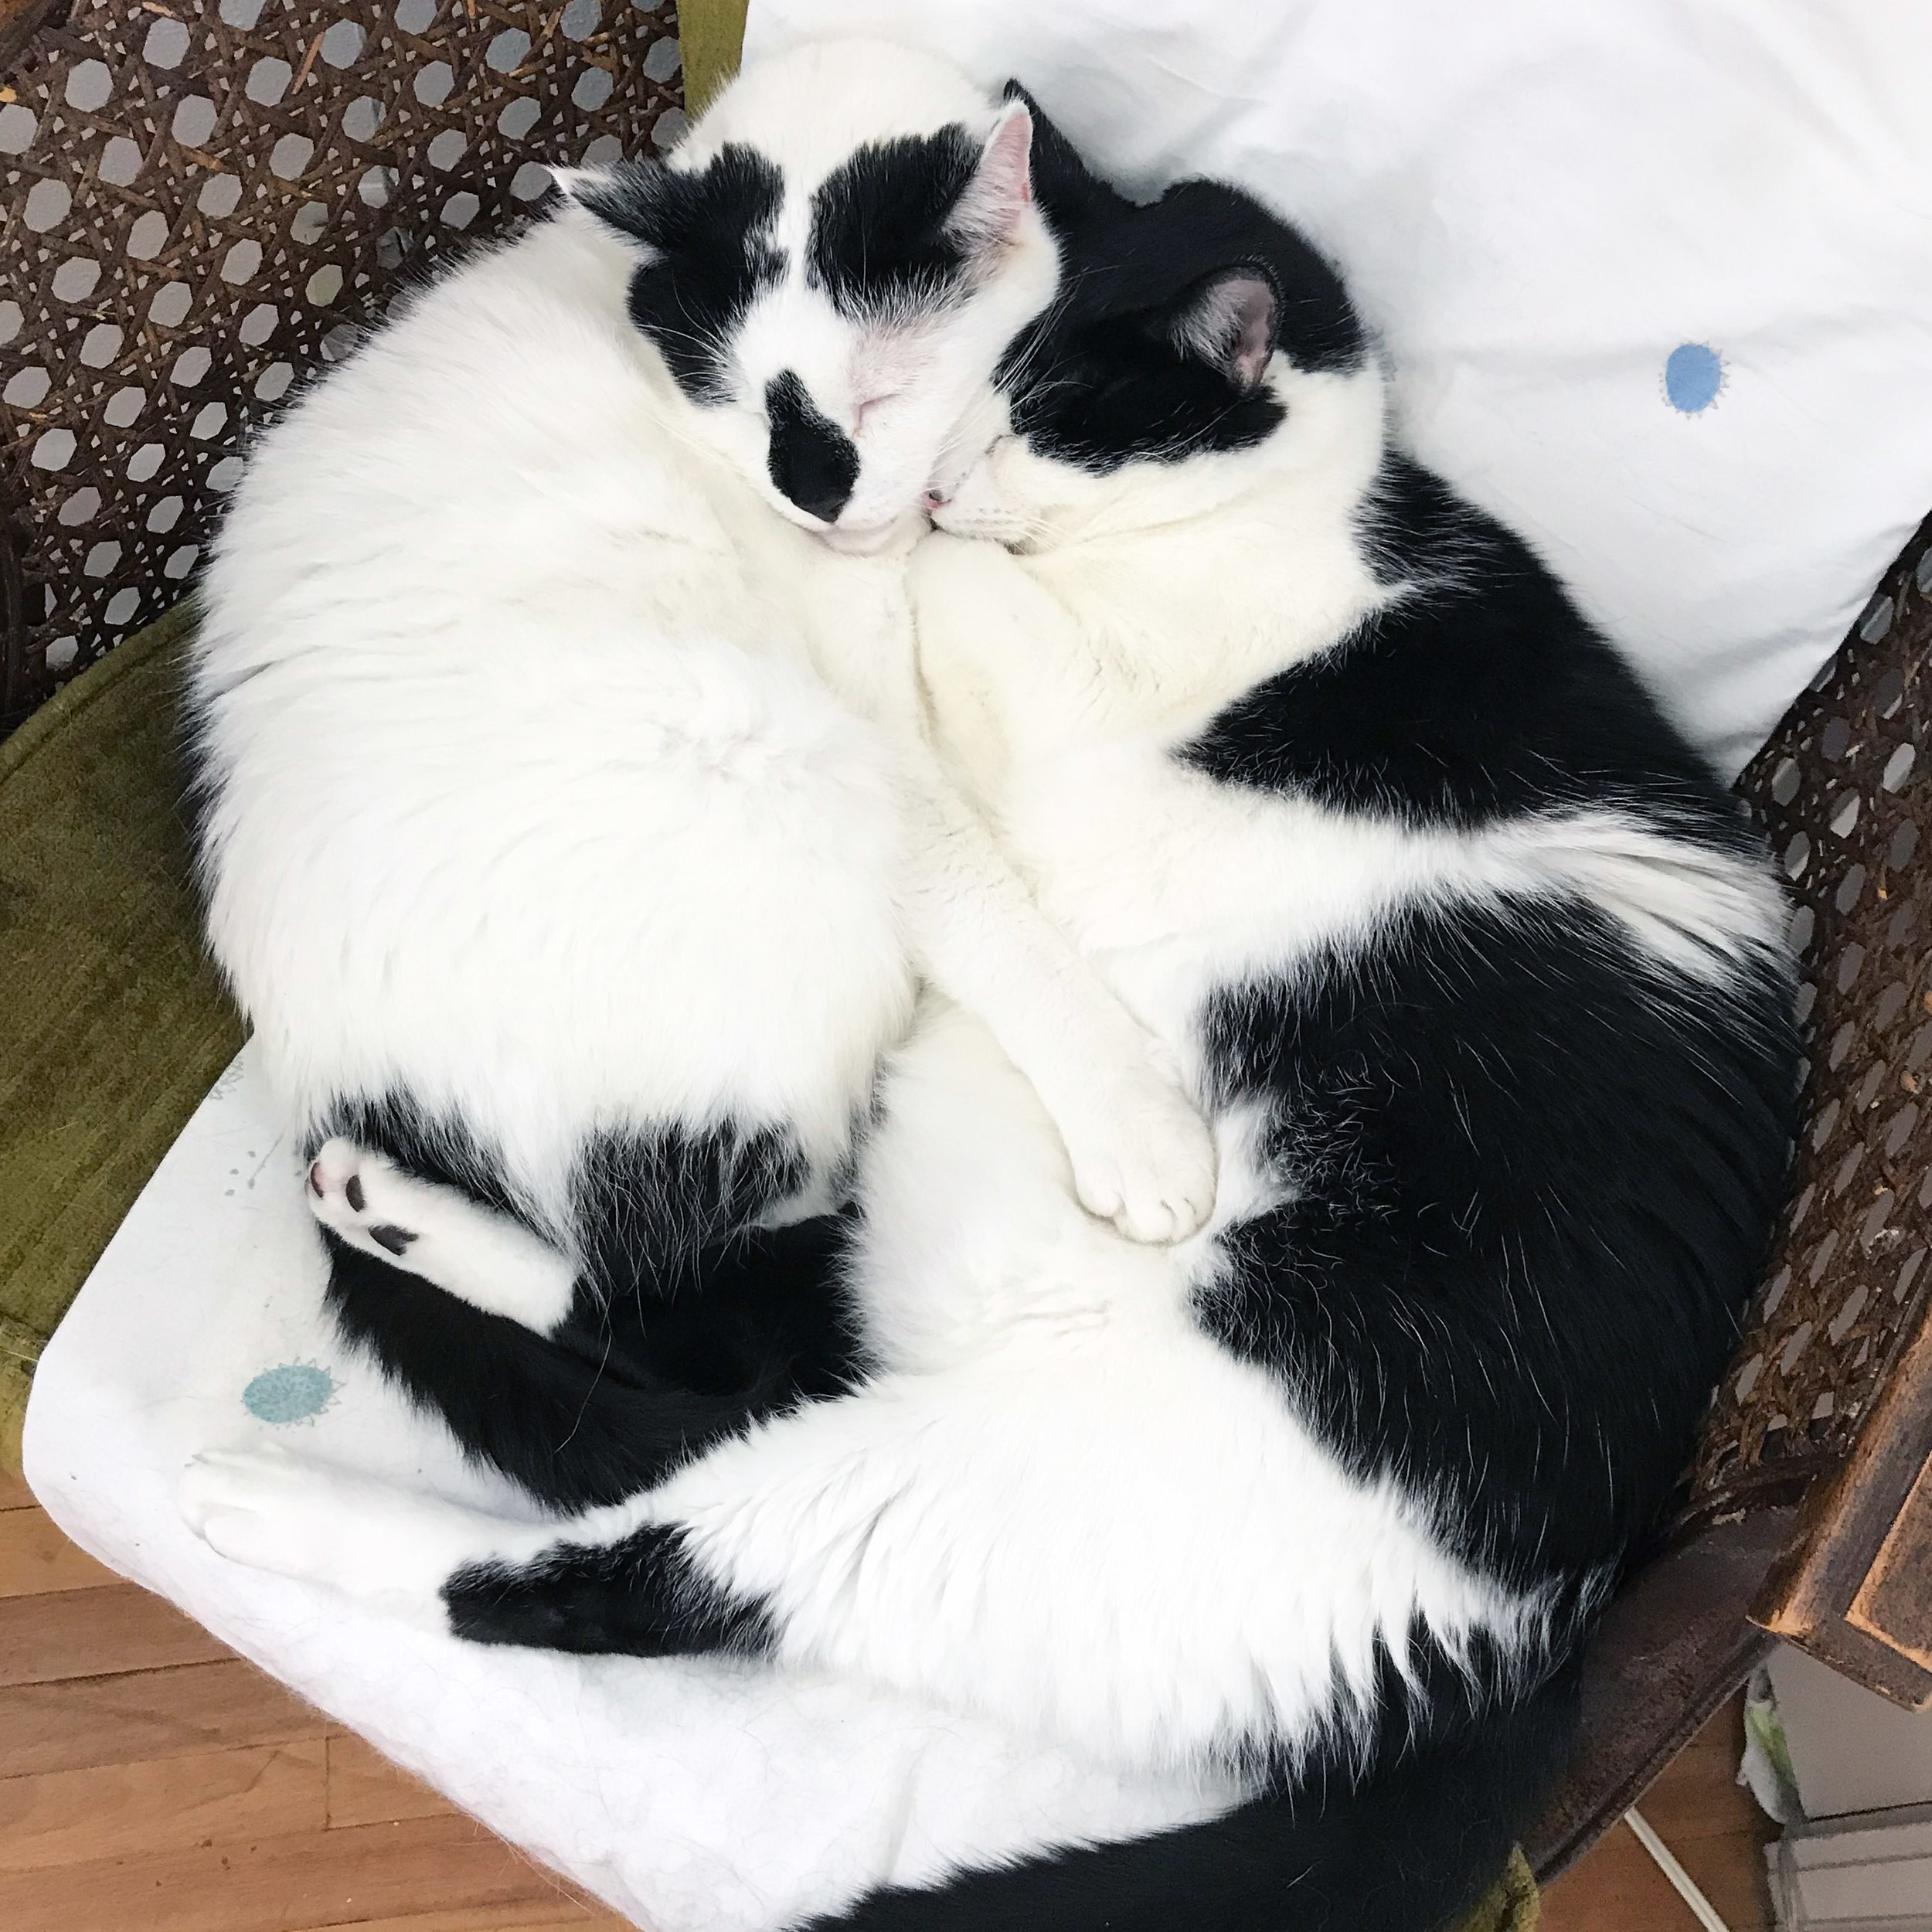 My Black and White Rescue Cats in Their Usual Place in the Chair in My Studio